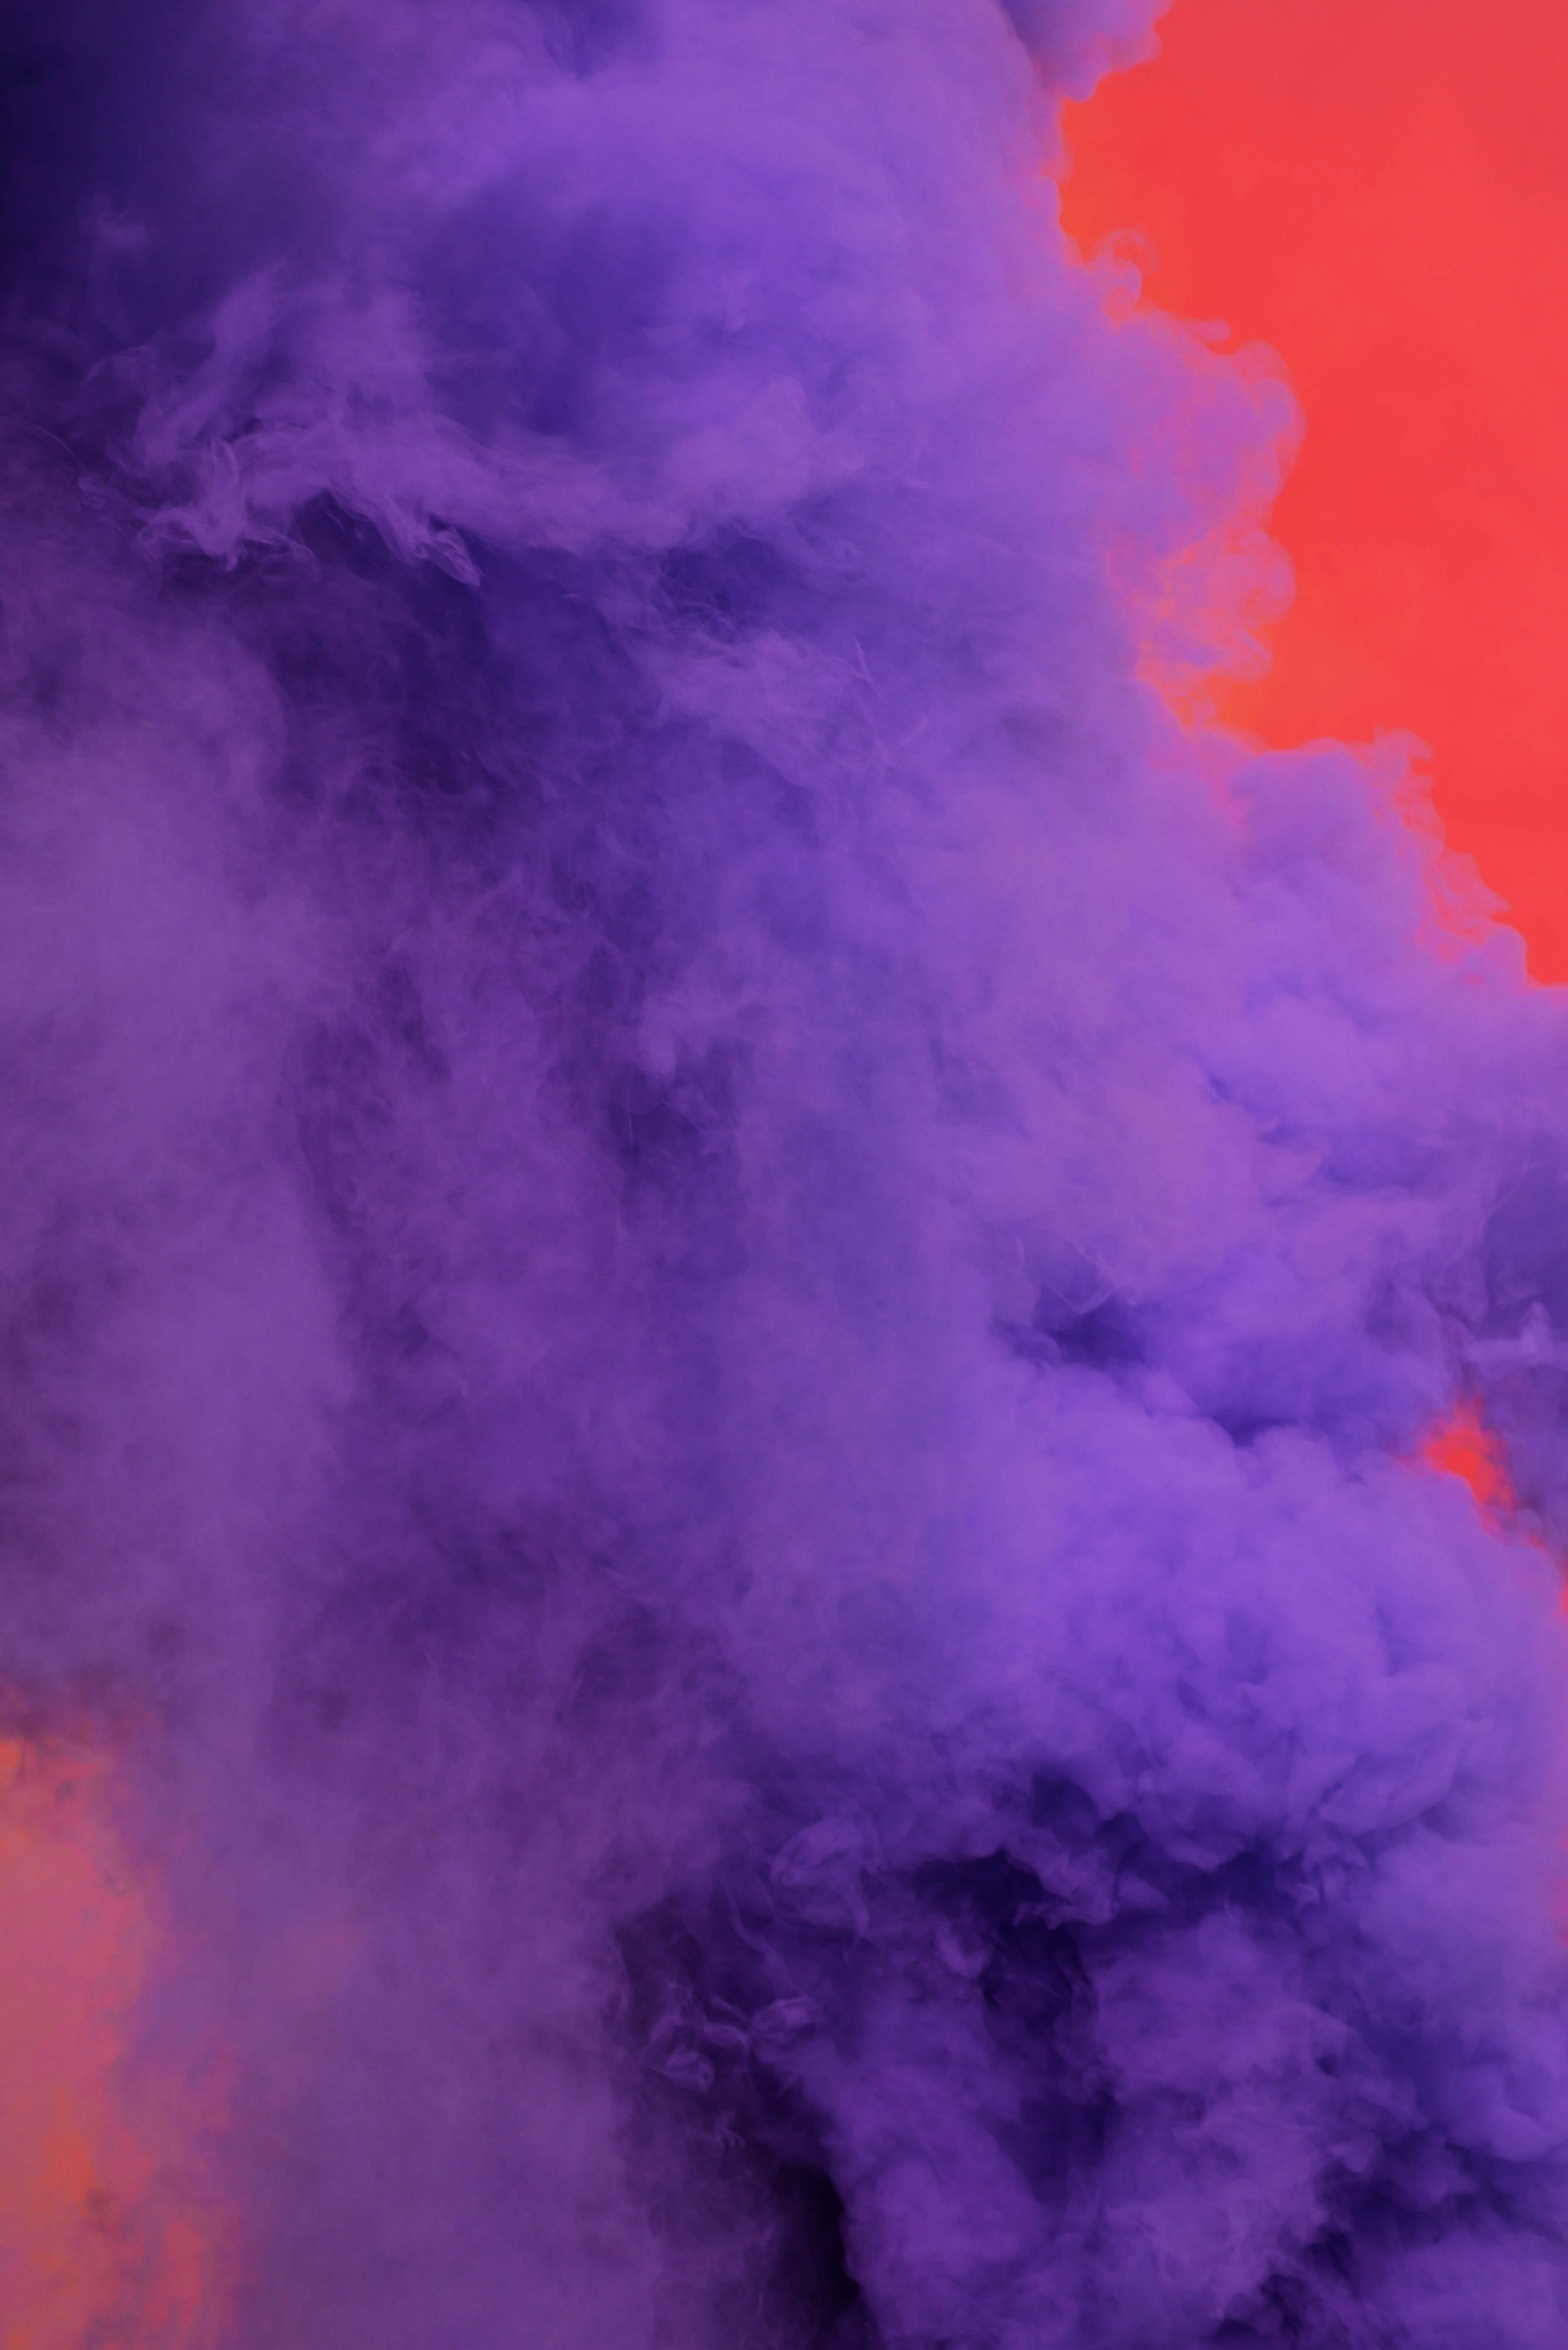 141165 Screensavers and Wallpapers Shroud for phone. Download Abstract, Smoke, Violet, Purple, Shroud pictures for free